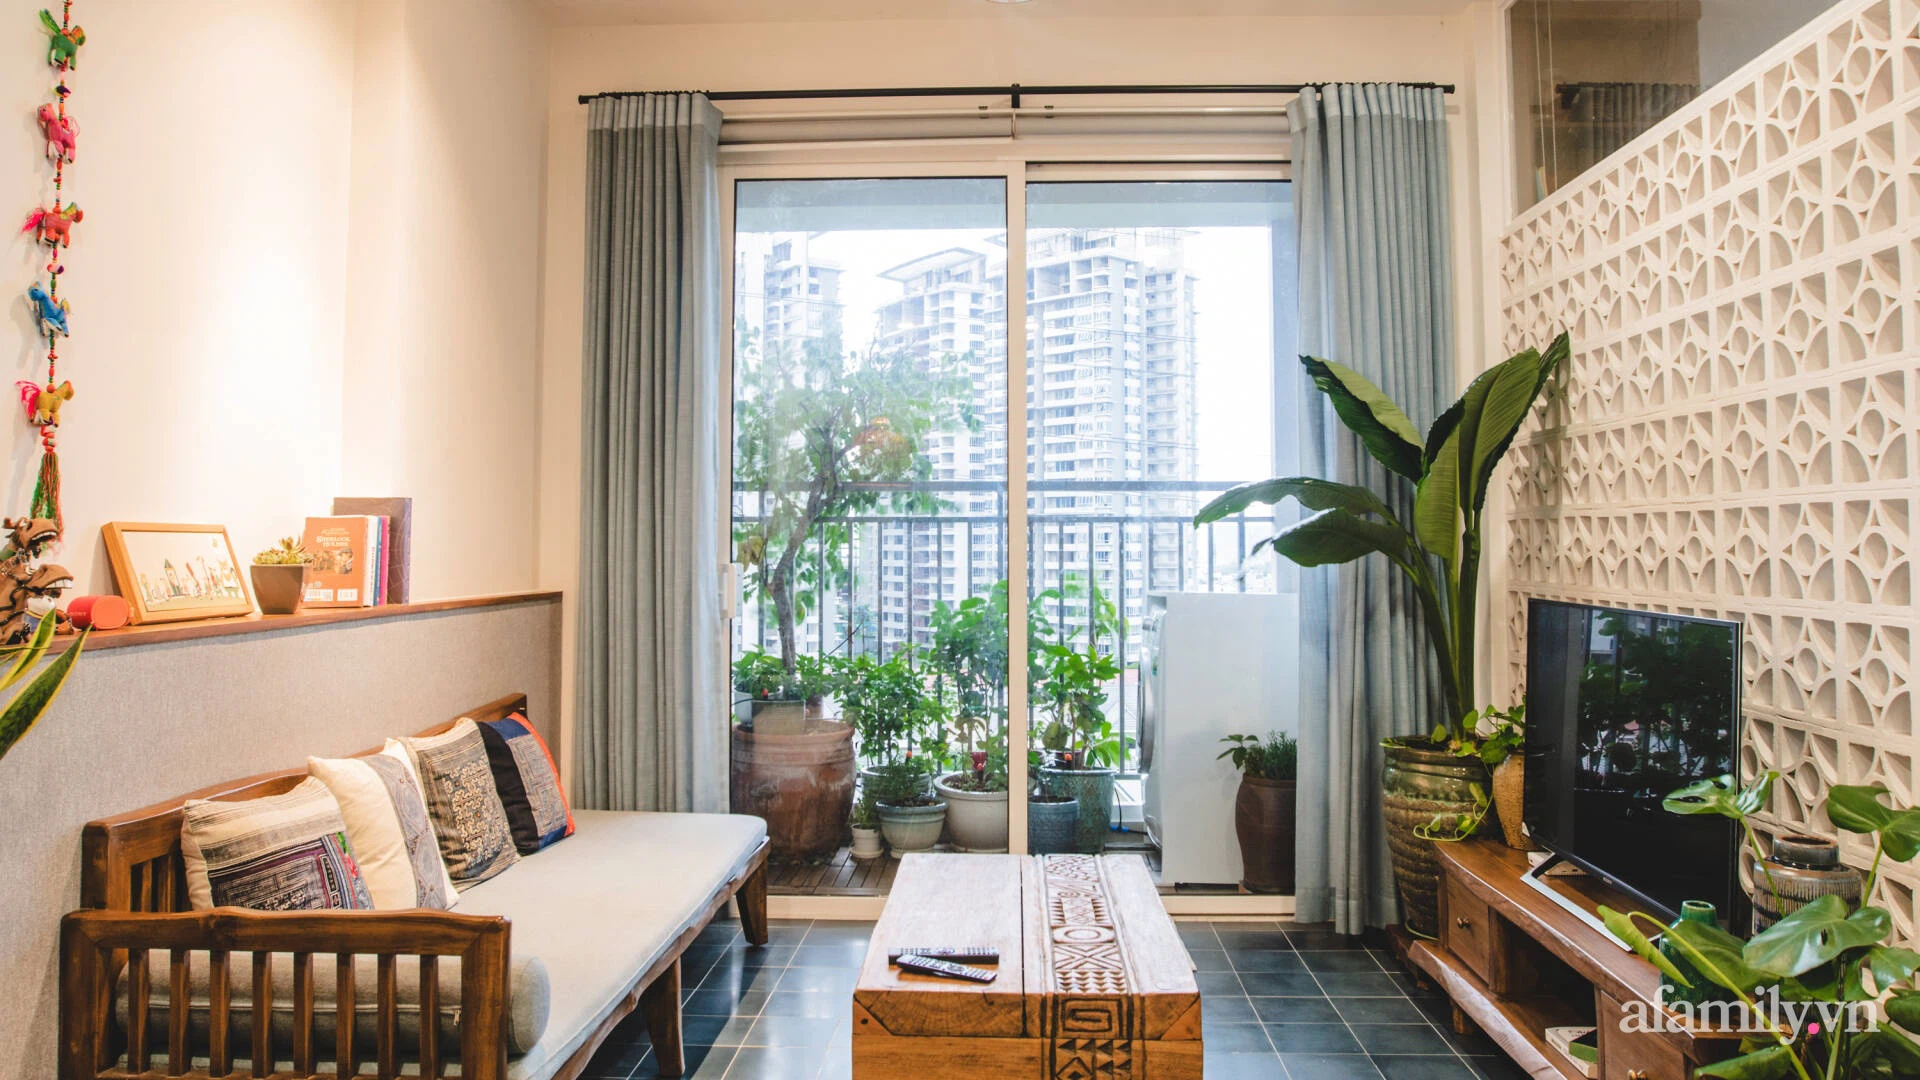 Beautiful and delicate 70m² apartment with traditional materials to prepare for Tet in Saigon